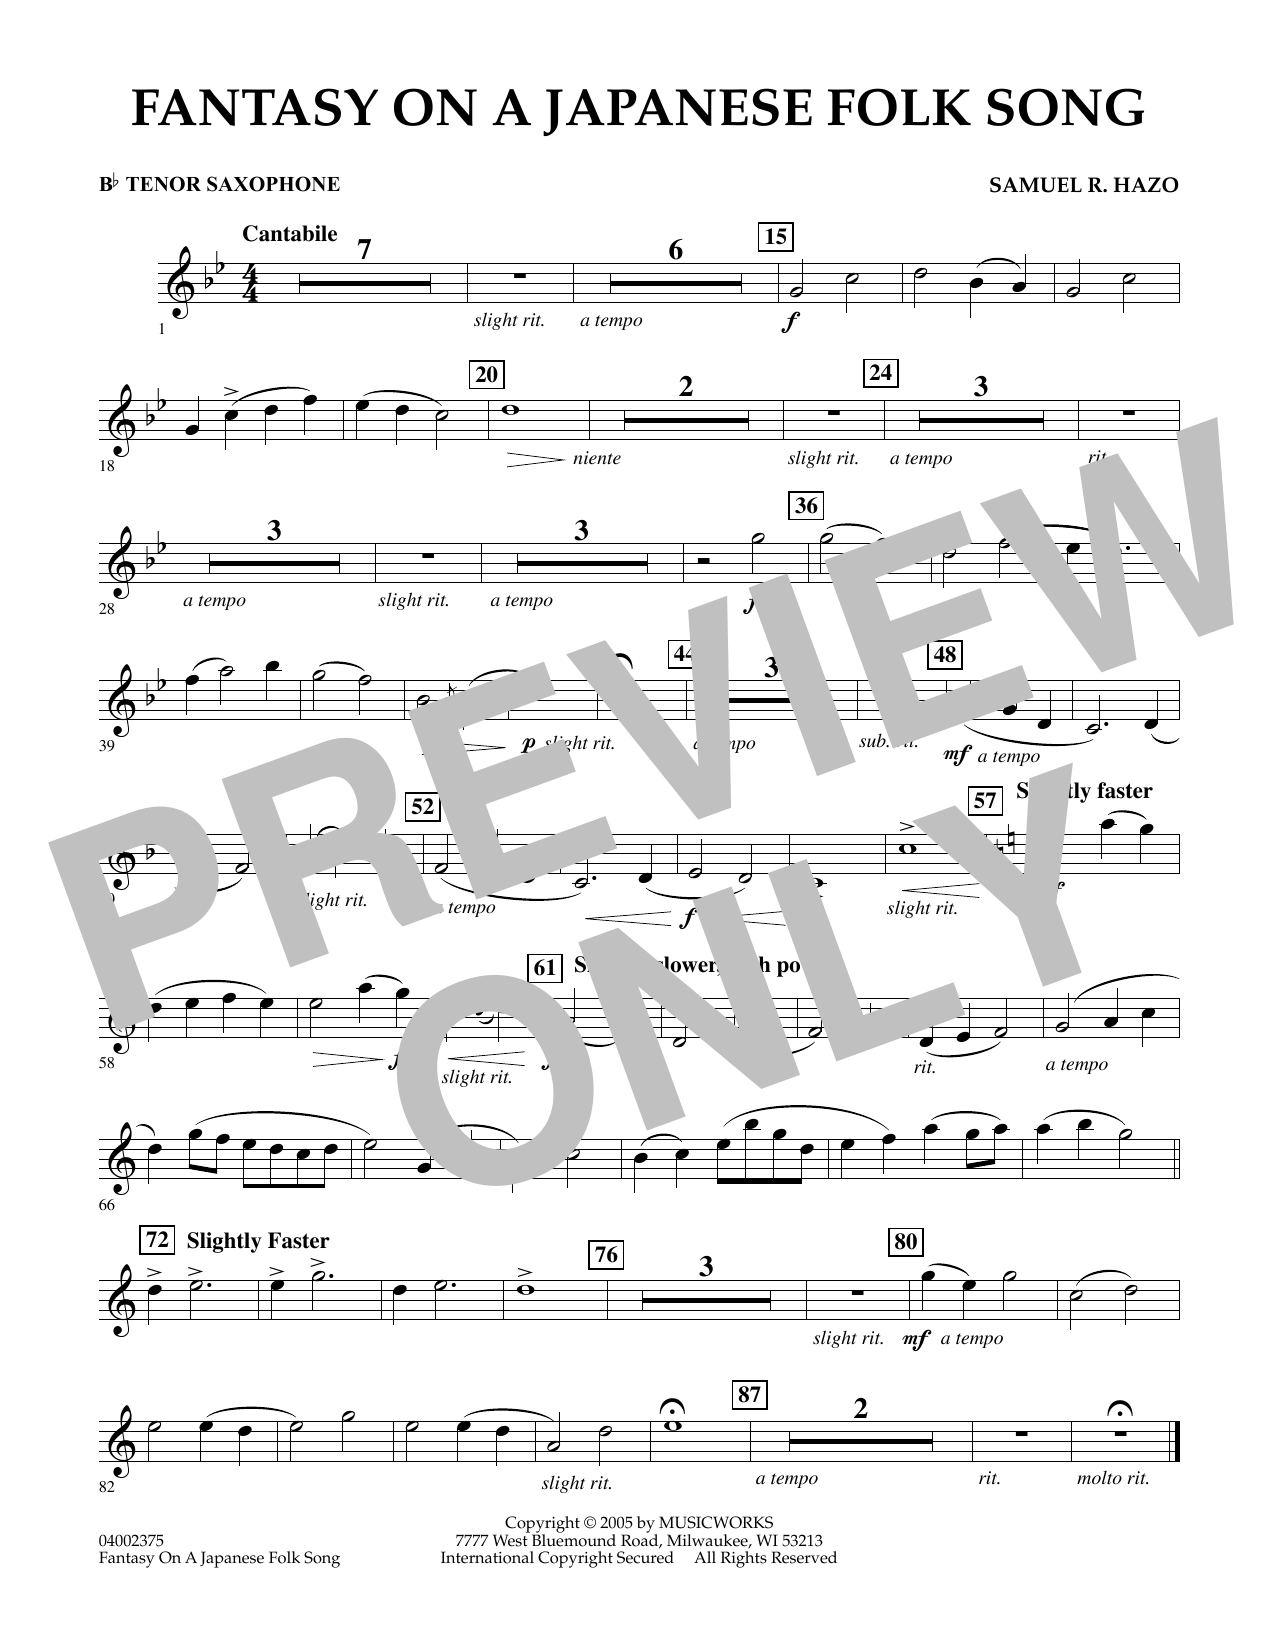 Download Samuel R. Hazo 'Fantasy On A Japanese Folk Song - Bb Tenor Saxophone' Digital Sheet Music Notes & Chords and start playing in minutes